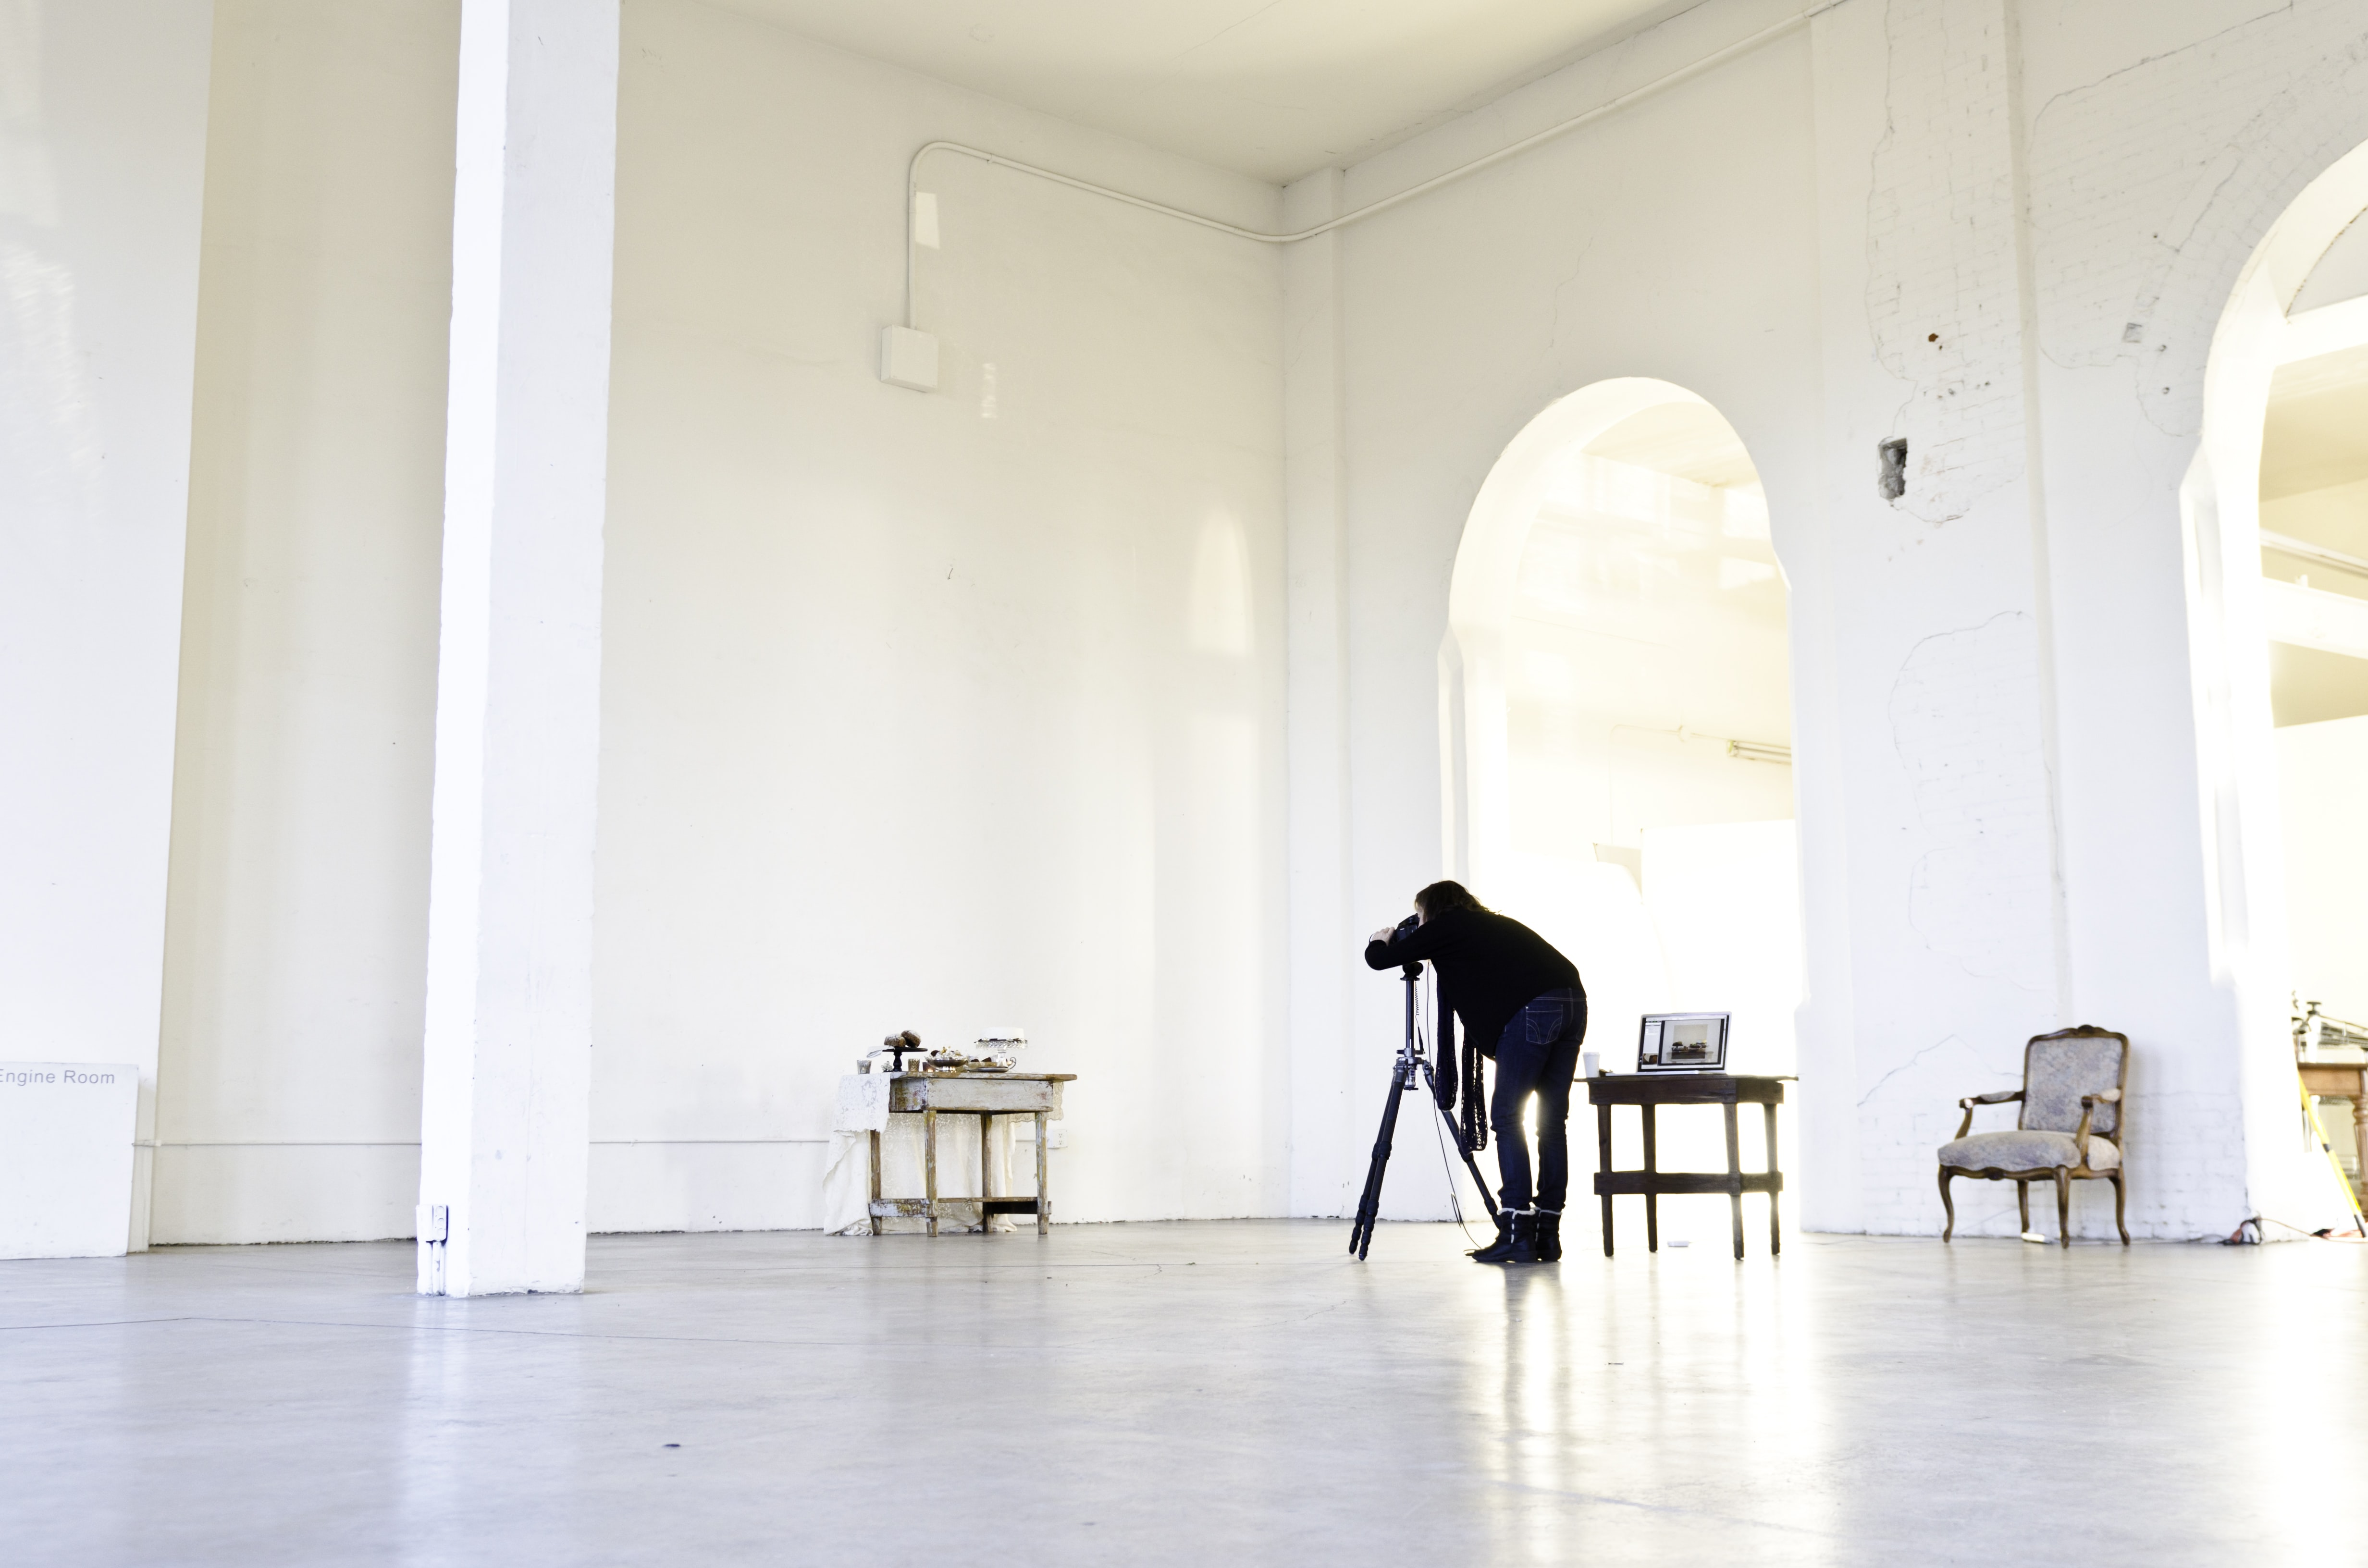 A photographer with at tripod takes a picture of a still life in a white building with tall ceilings and arches